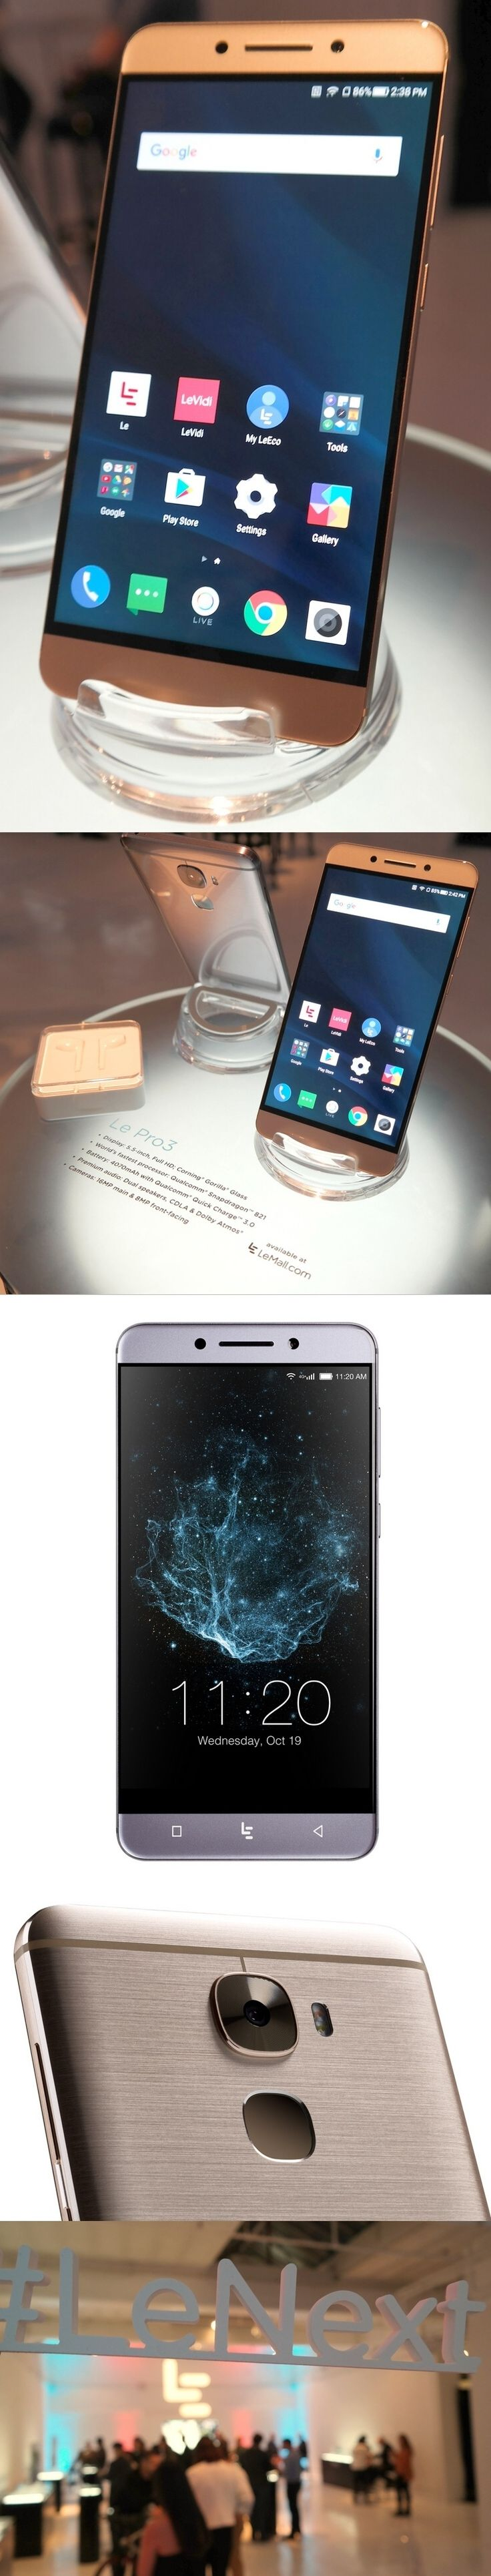 LeEco Le Pro3: The most powerful Android smartphone you've never heard of. Its Qualcomm Snapdragon 821 CPU (snappy app performance, enhanced audio and smooth video) is the same used in the Google Pixel but at $299 (after $100 rebate) it's far cheaper. It has a 5.5-inch display, 16/8 MP rear/front cameras, a fast-charging, long-lasting 4070 mAh battery, a fingerprint reader and an infrared port with a remote-control app. No headphone jack, but earbuds for its USB-C port are included.